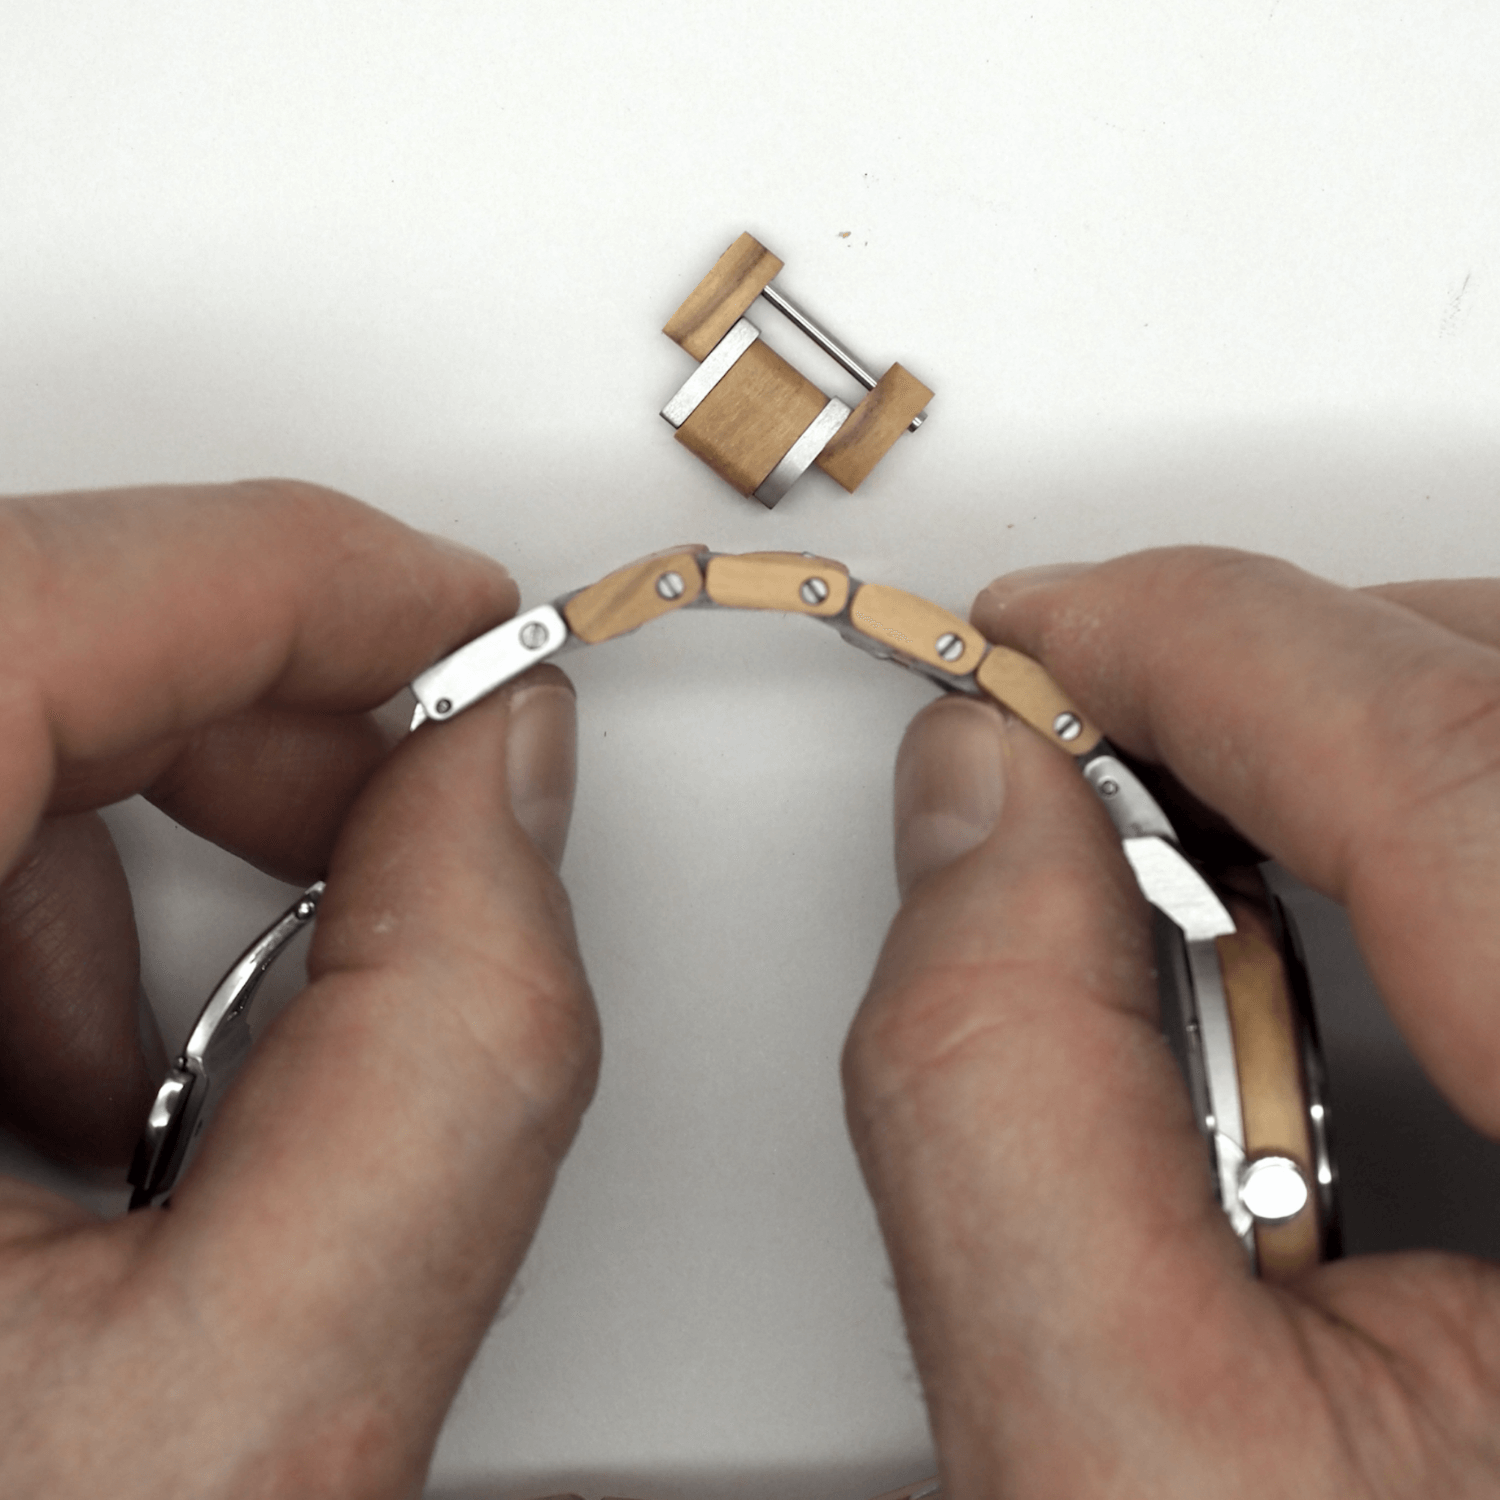 Person holding wooden watch band and link